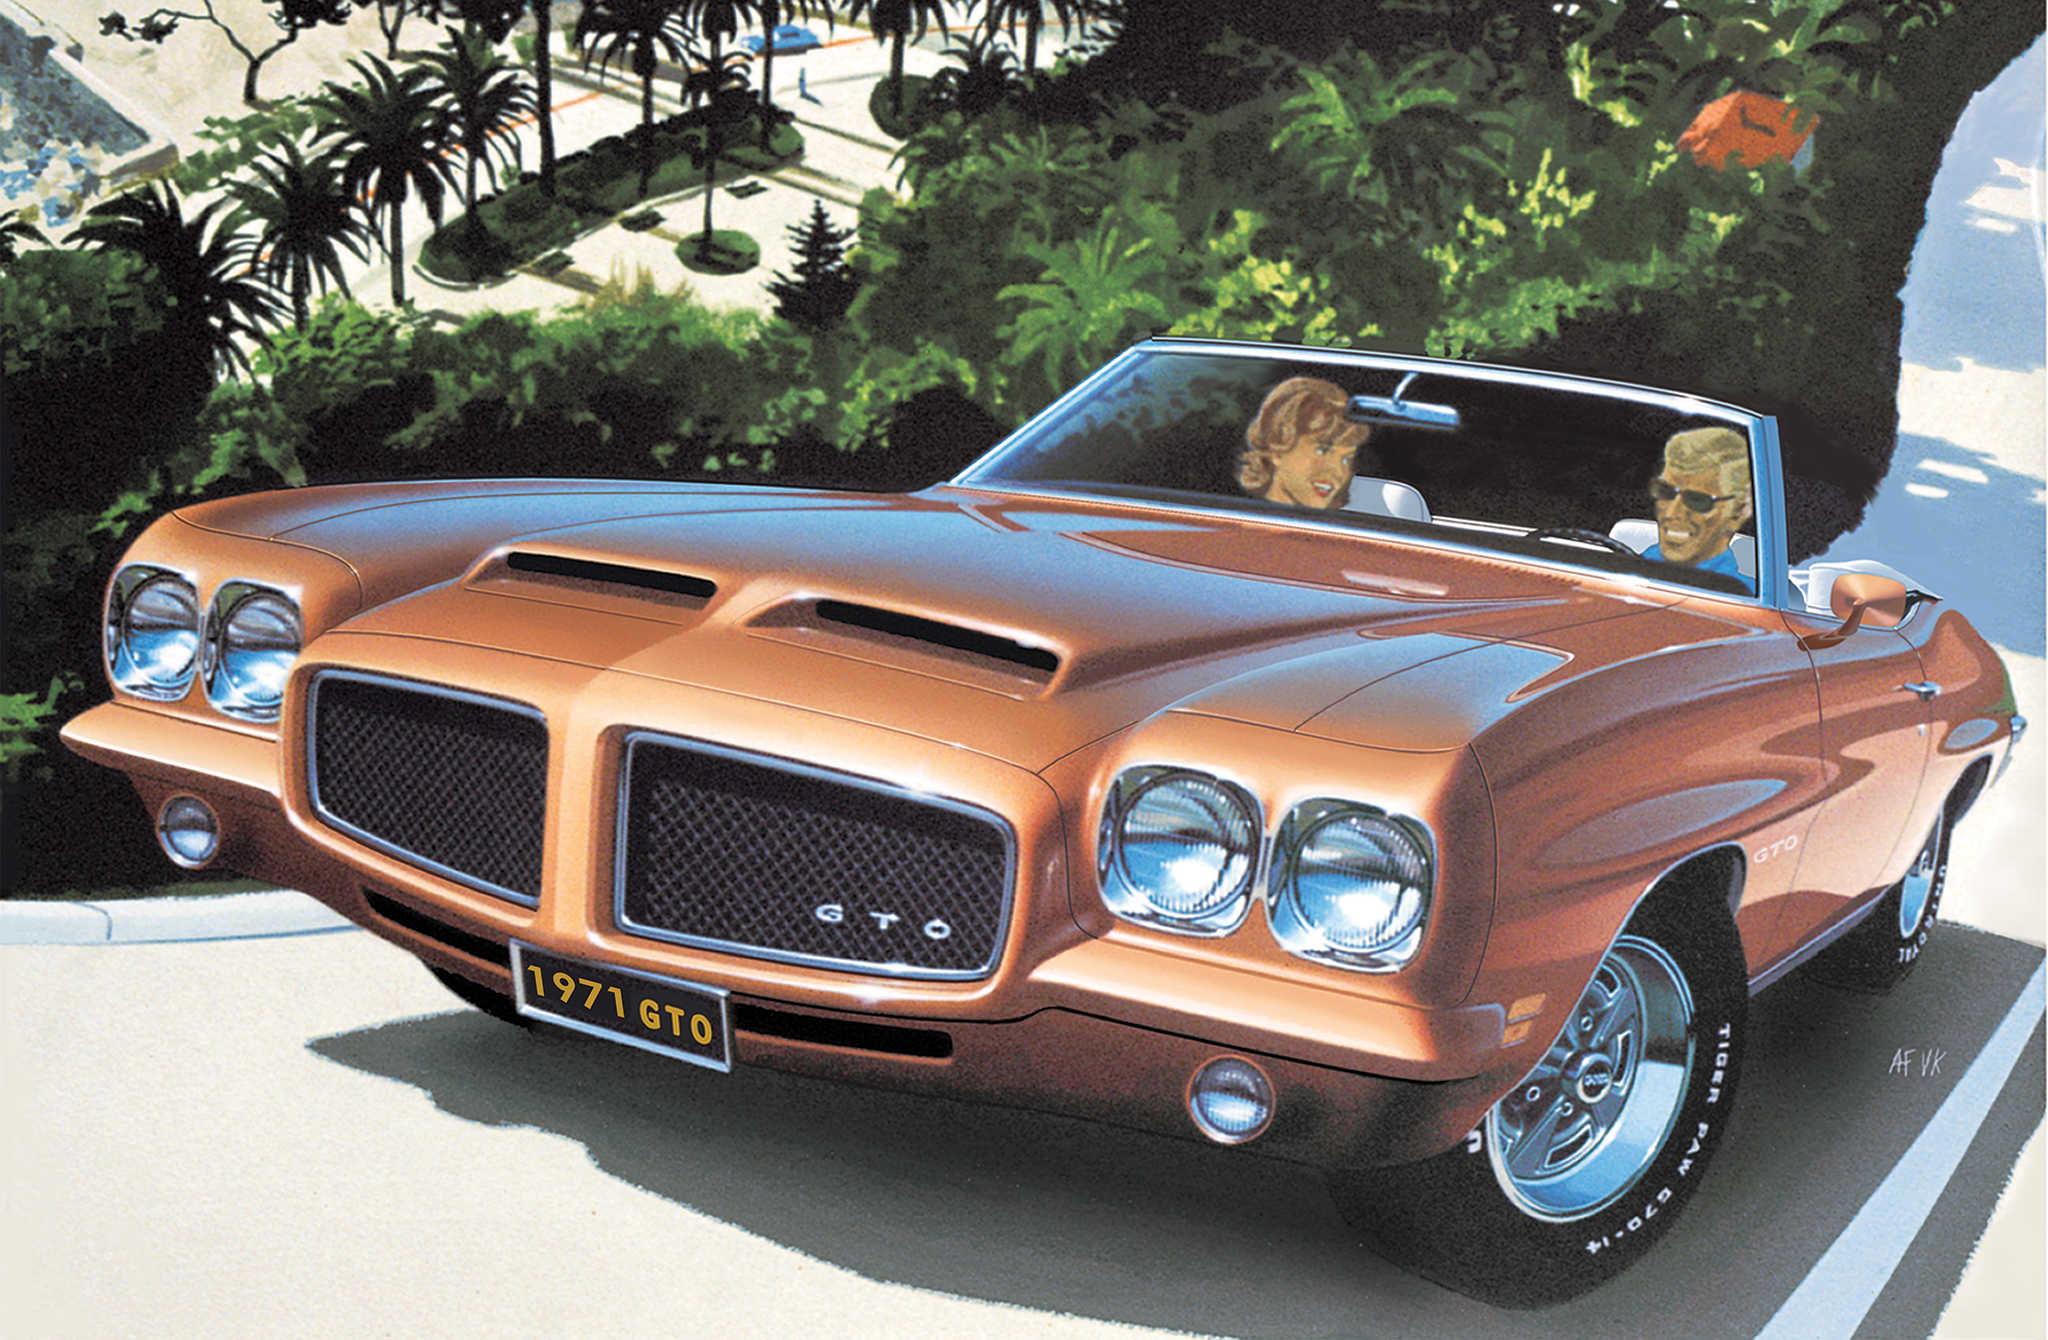 Road to Eze is one of many Fitzpatrick/Kaufman paintings that make use of actual photographs taken by the artists during their extensive (yet separate) world travels. Note there are two versions of the painting, one featuring a '71 GTO hardtop and the other a convertible.